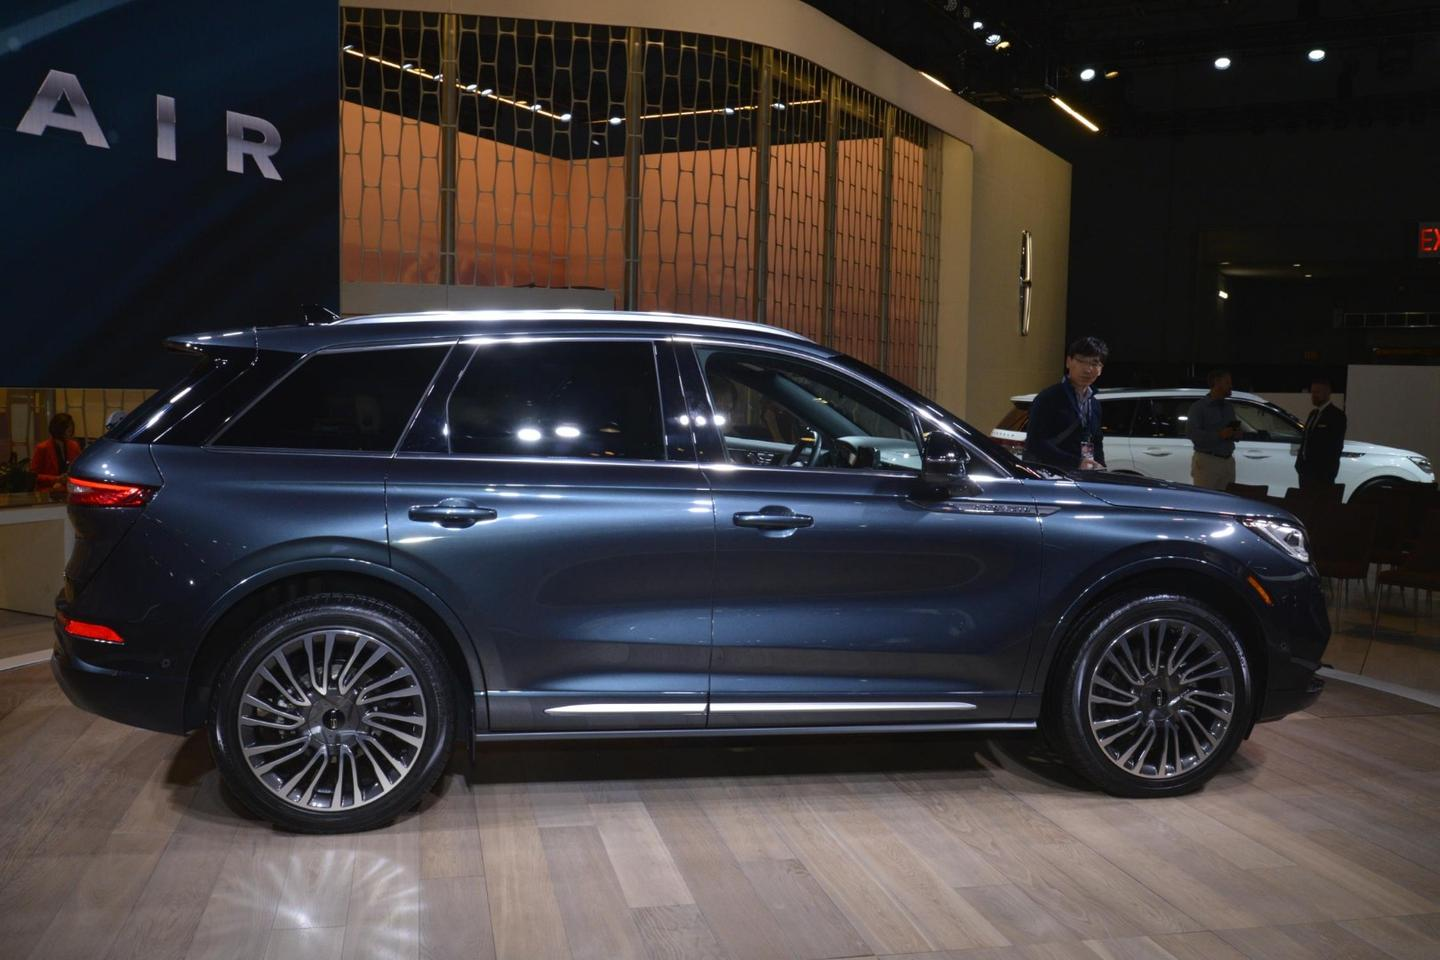 In photos: The 2019 NY Auto Show, from supercars to all